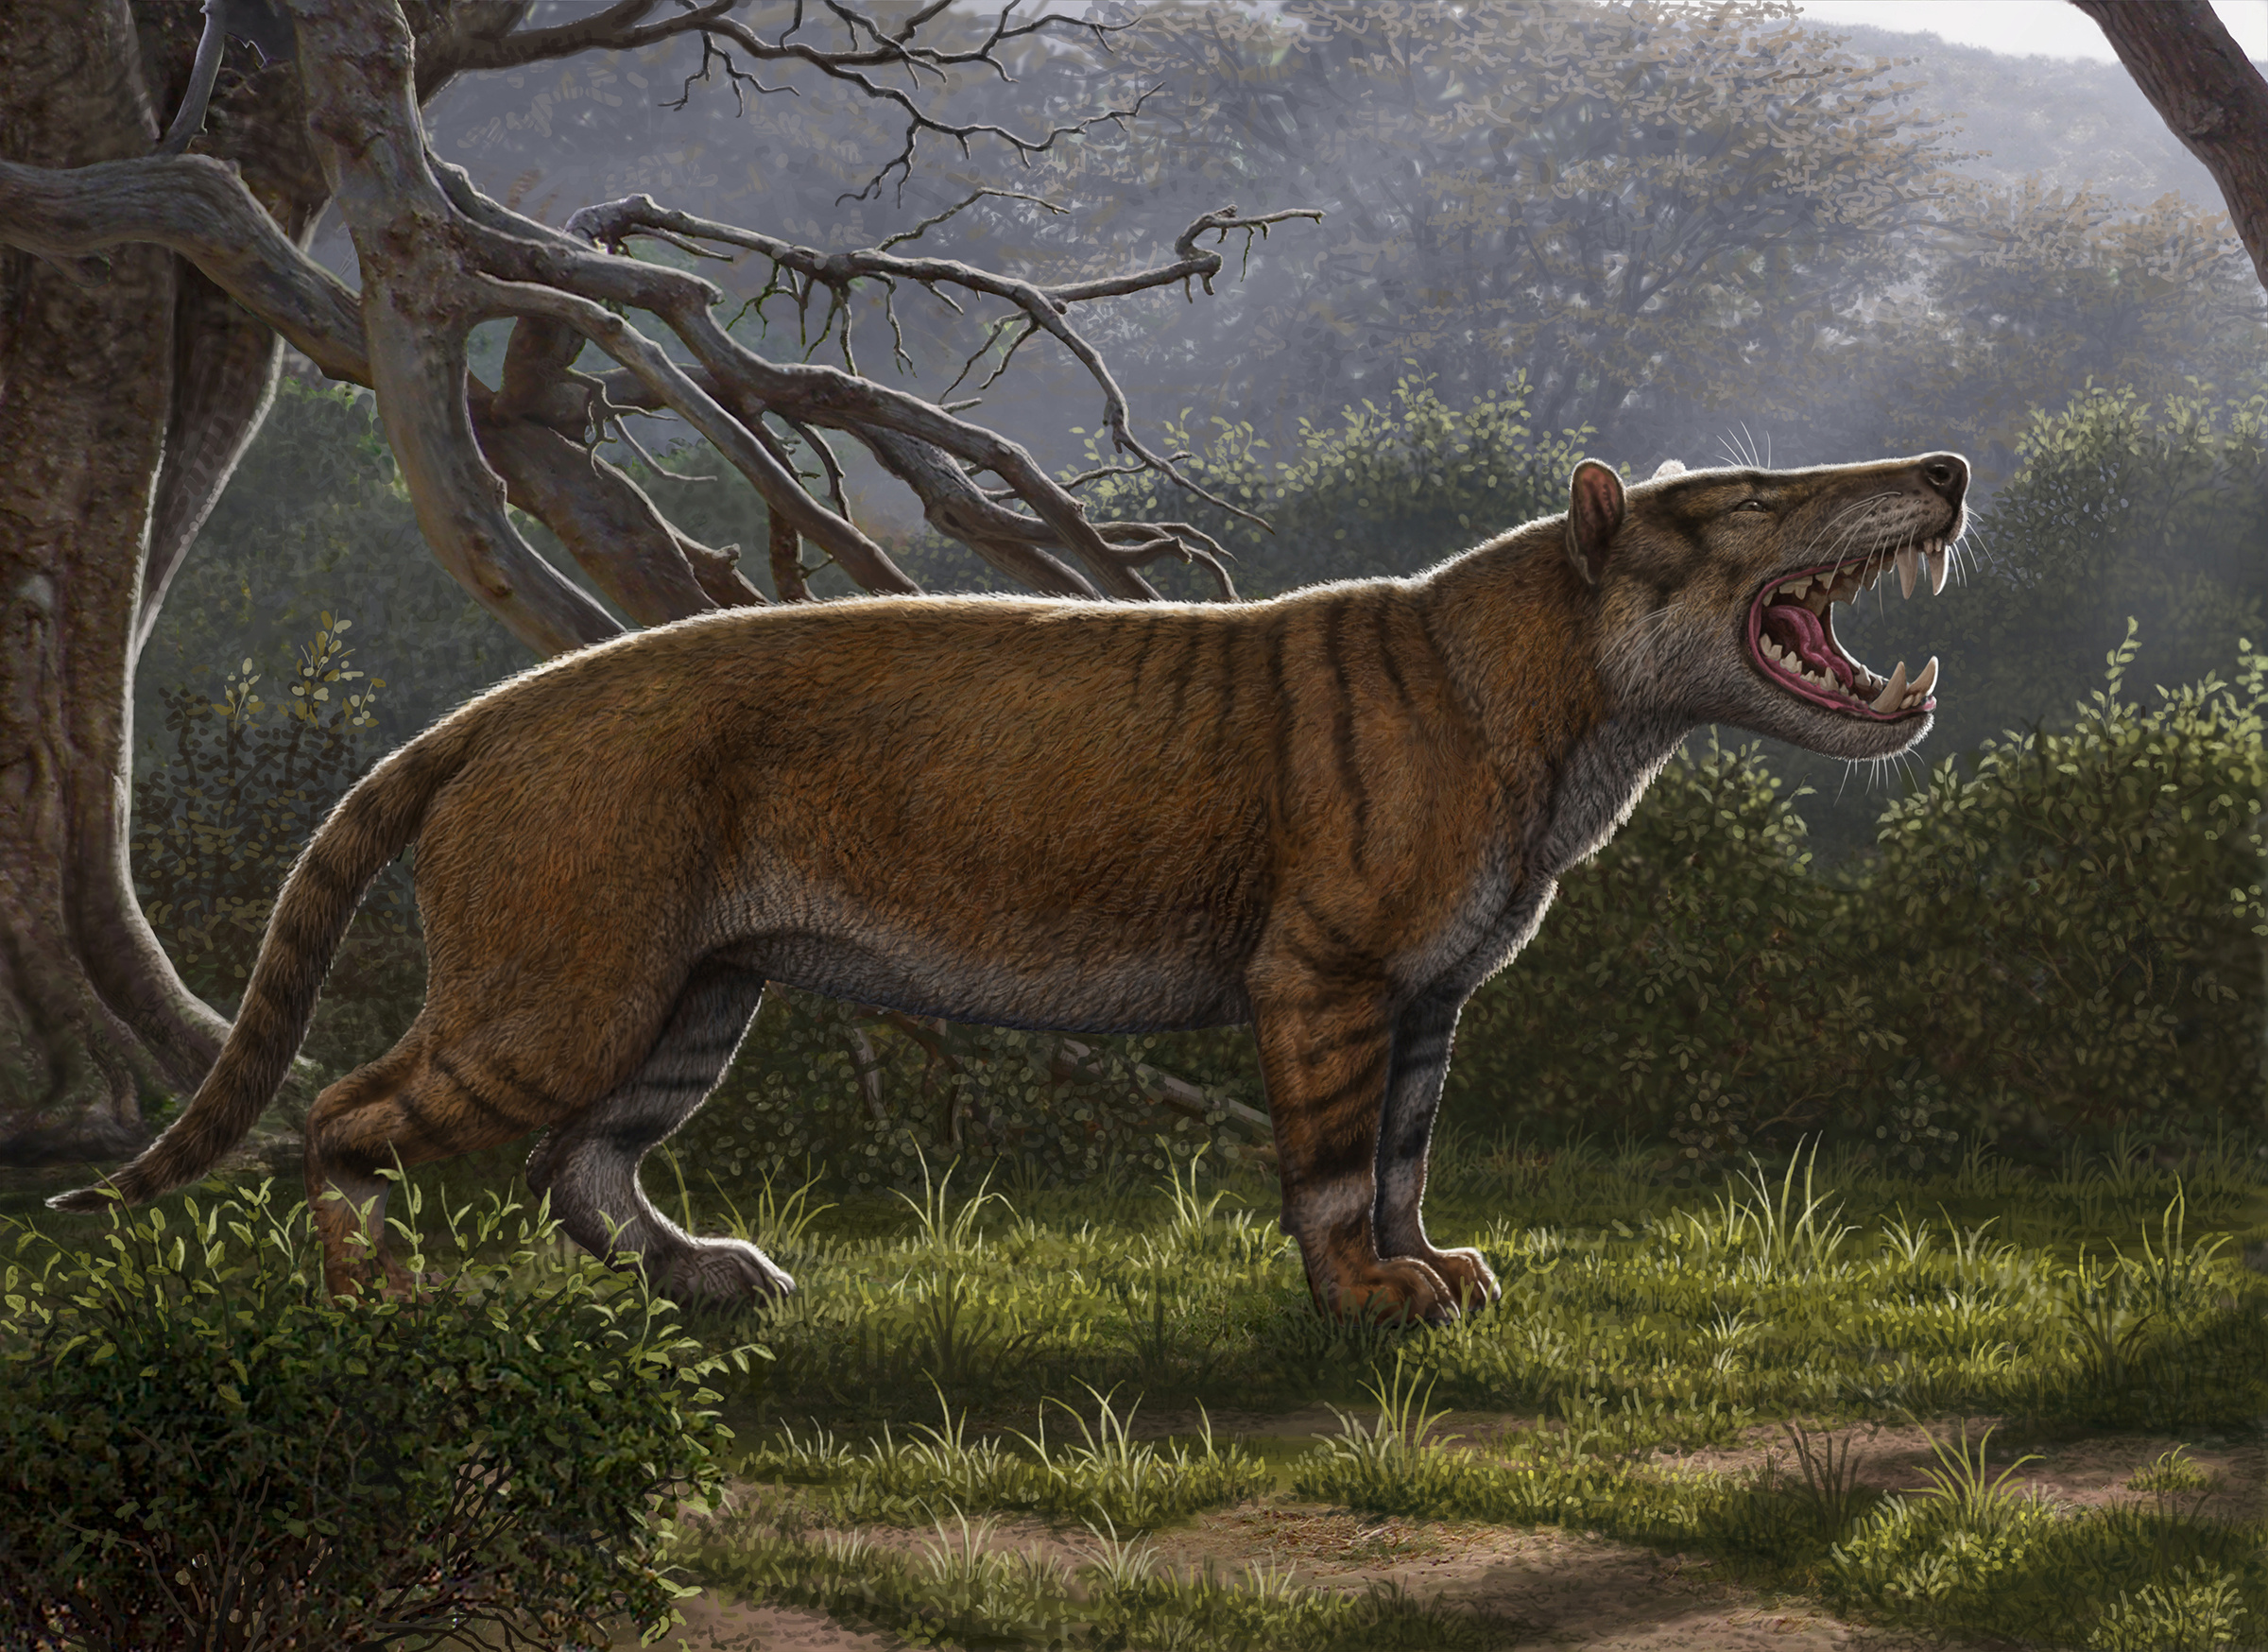 Simbakubwa kutokaafrika, a gigantic mammalian carnivore that lived 22 million years ago in Africa and was larger than a polar bear, is seen in this artist's illustration released in Athens, Ohio, U.S., on April 18, 2019.   Courtesy Mauricio Anton/Handout via REUTERS